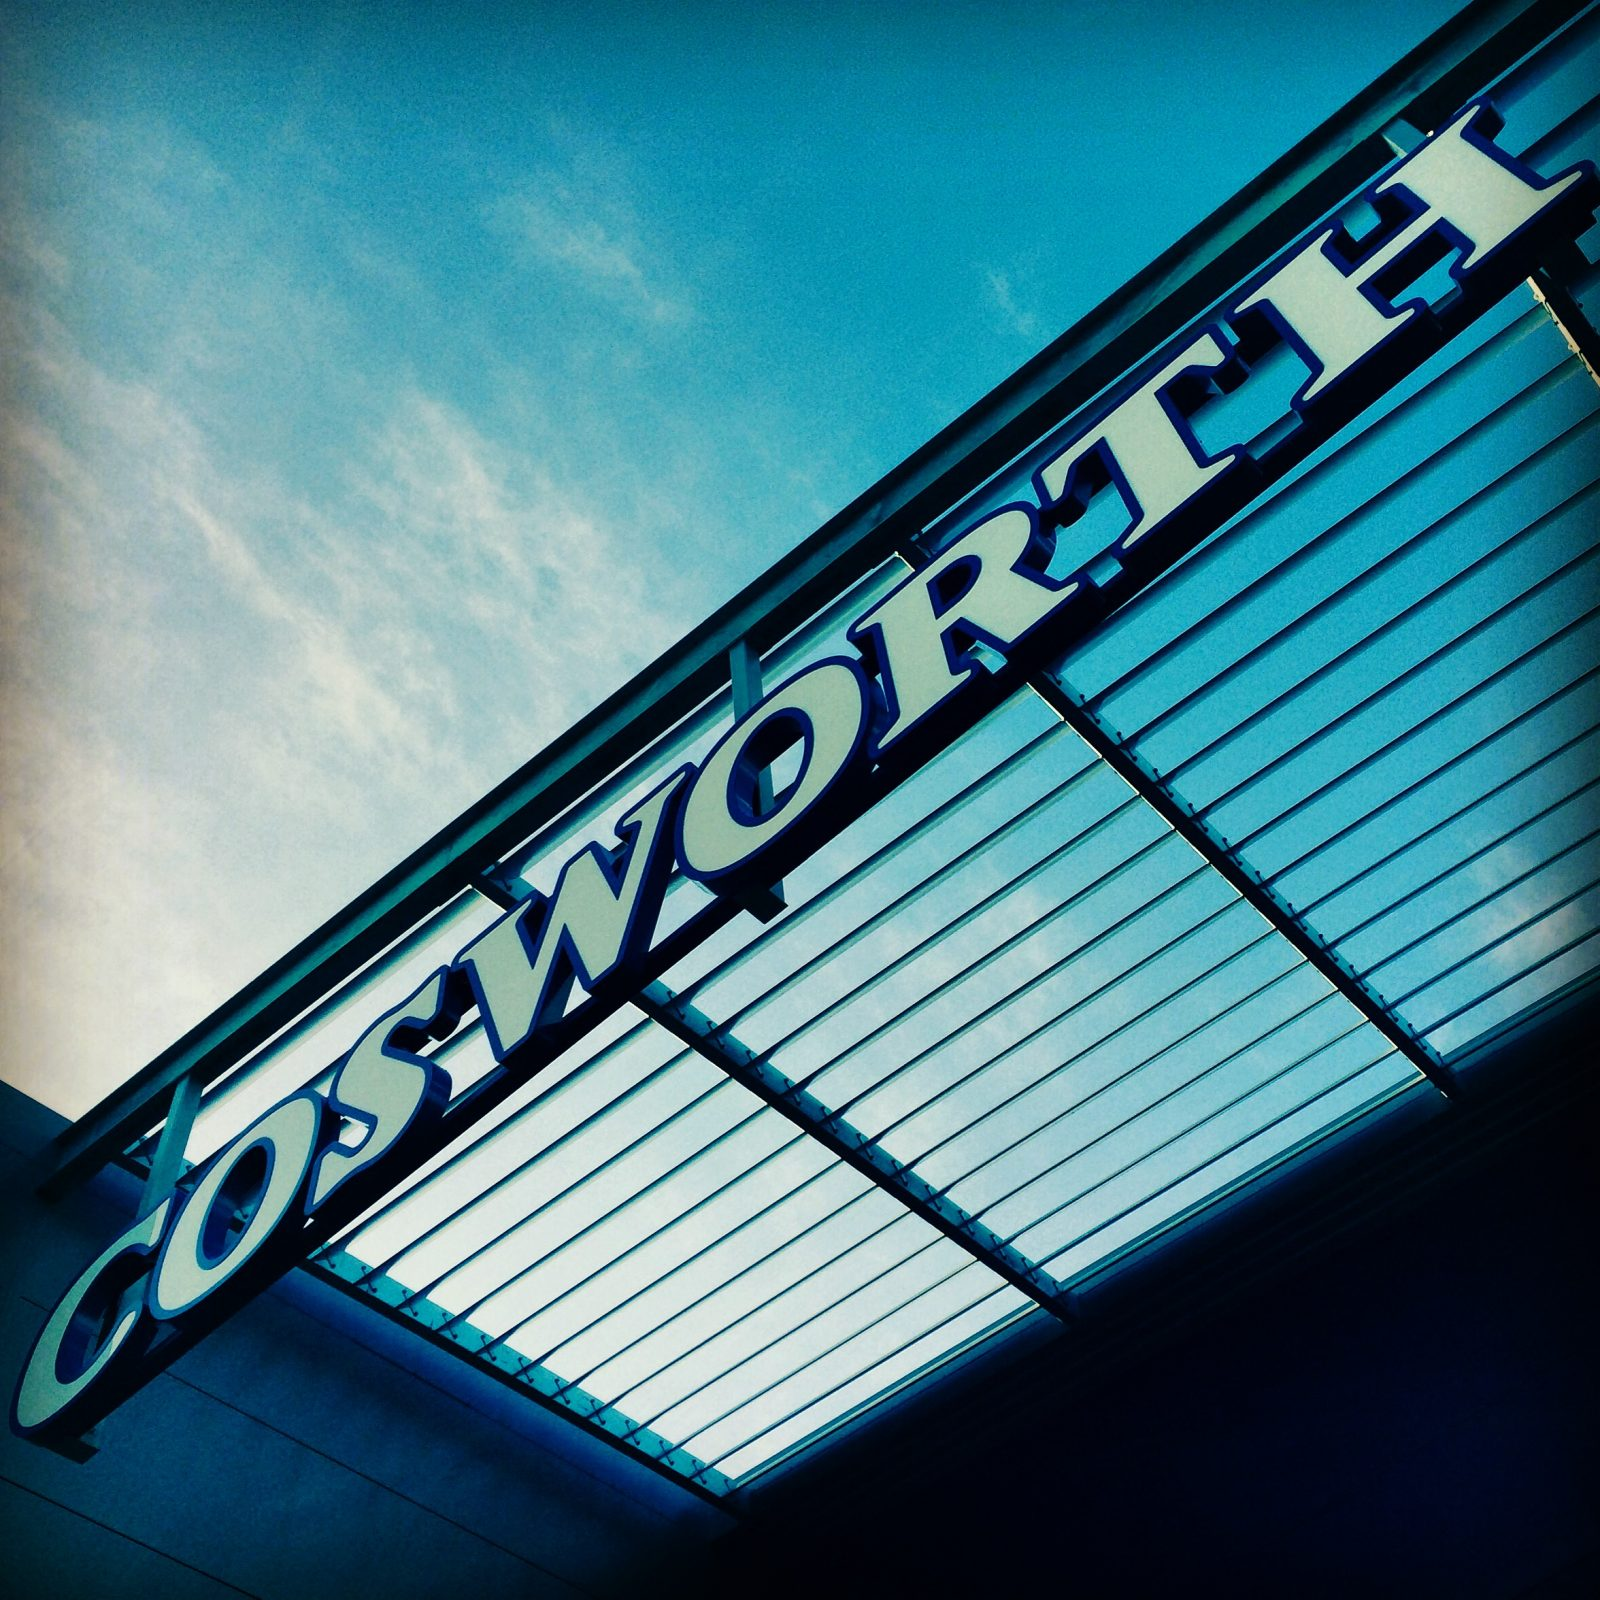 Cosworth factory pic